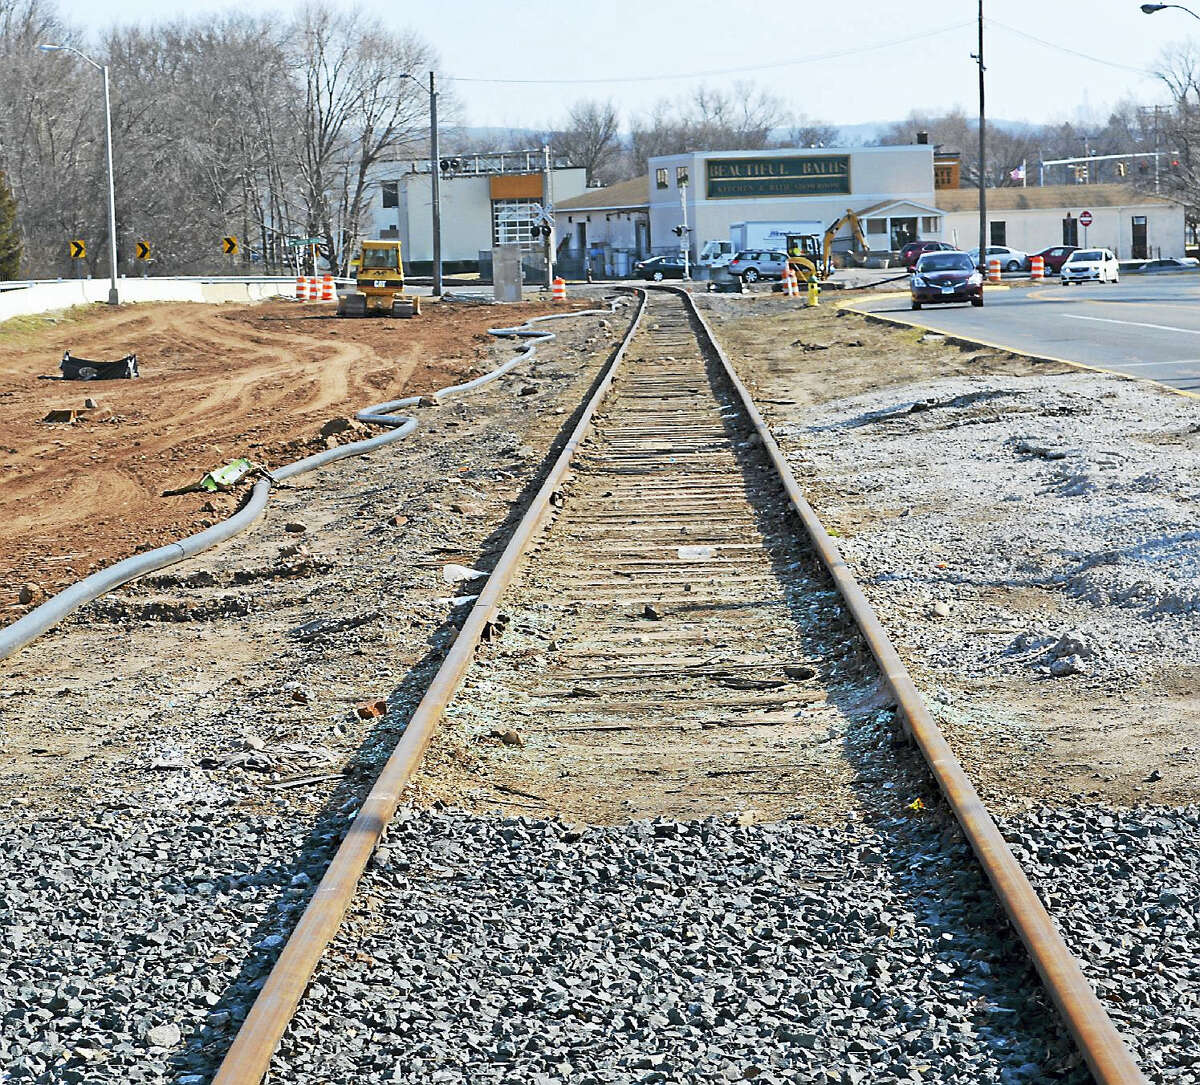 Middletown's Mattabassett Regionalization Building Committee members said the Providence and Worcester Railroad charged the city for lagging operations on days when work was not performed.